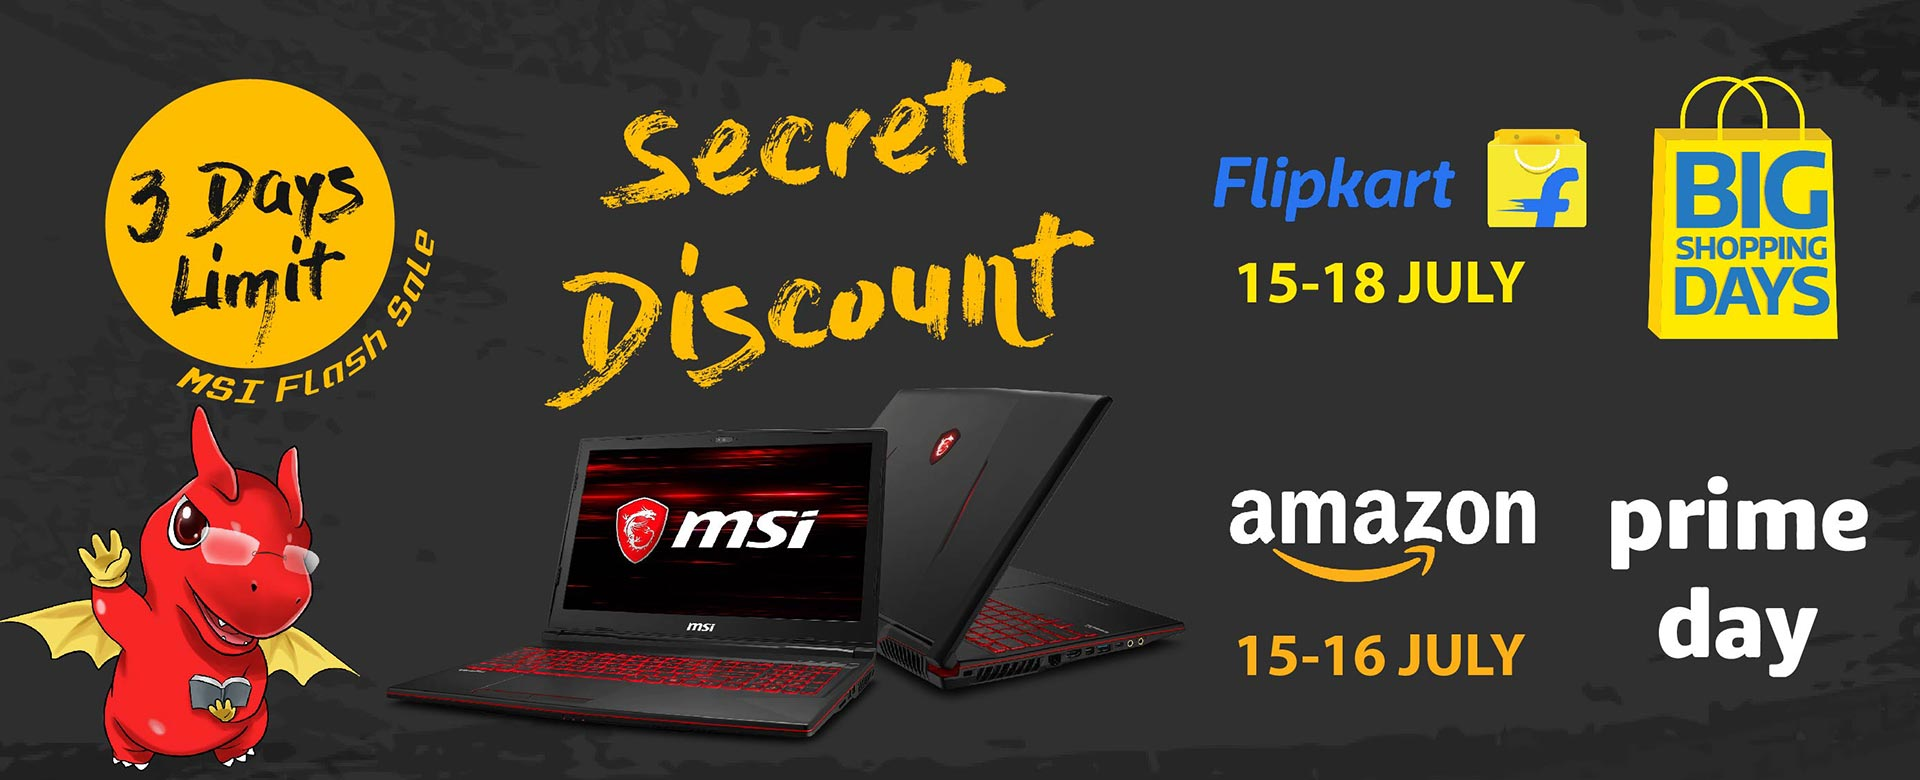 sale with secret disount in 3 days